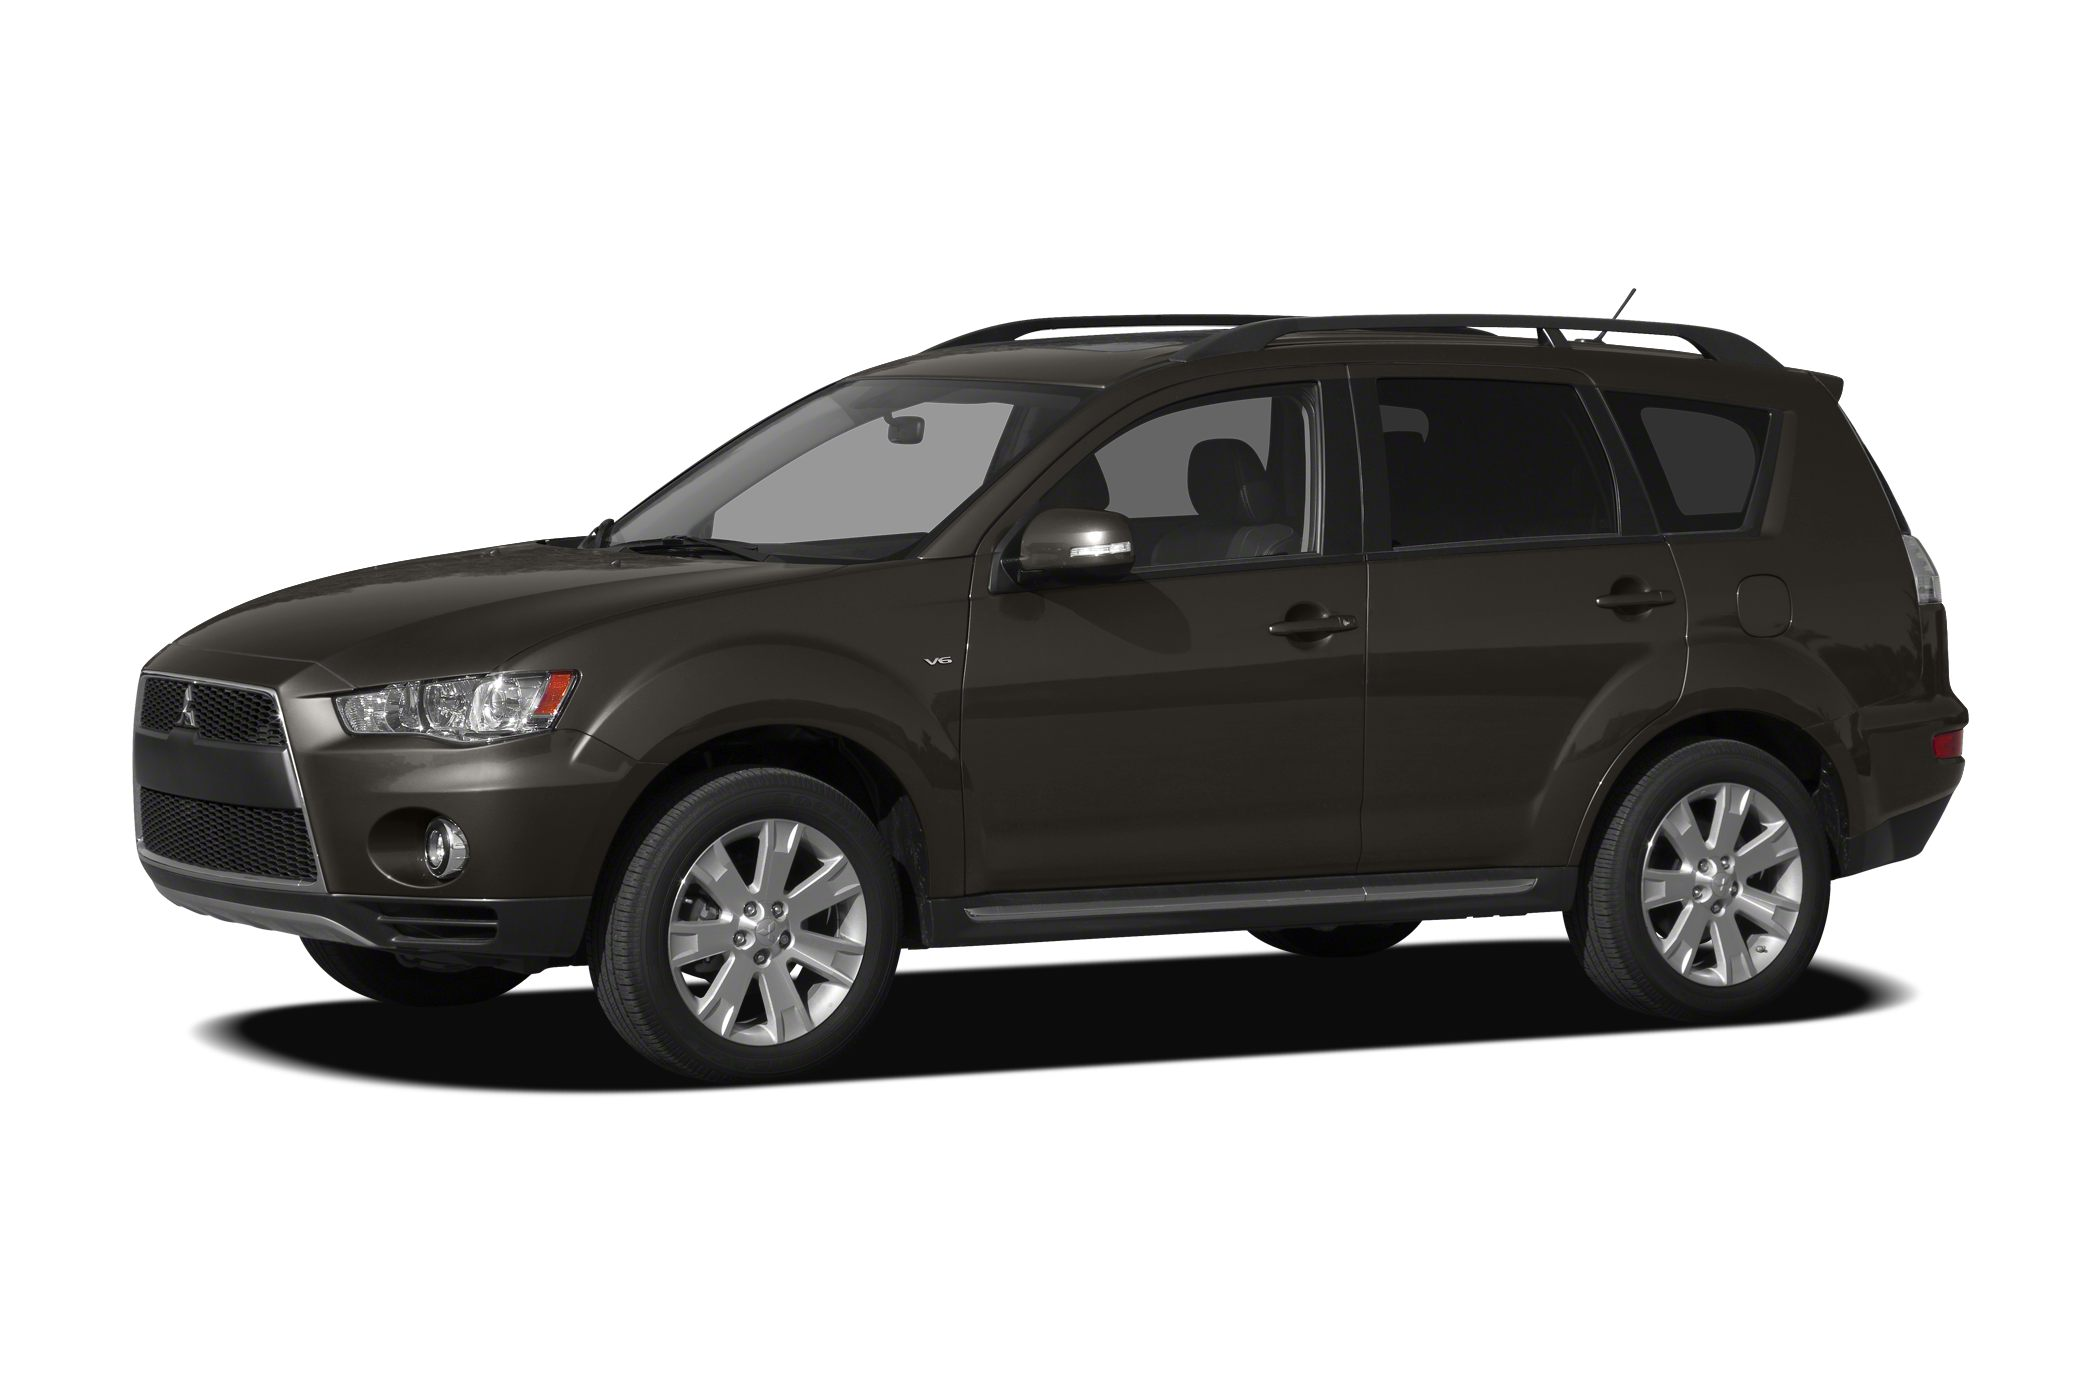 2012 Mitsubishi Outlander SE Heres a good looking SUV Feature-packed and decked out All of the